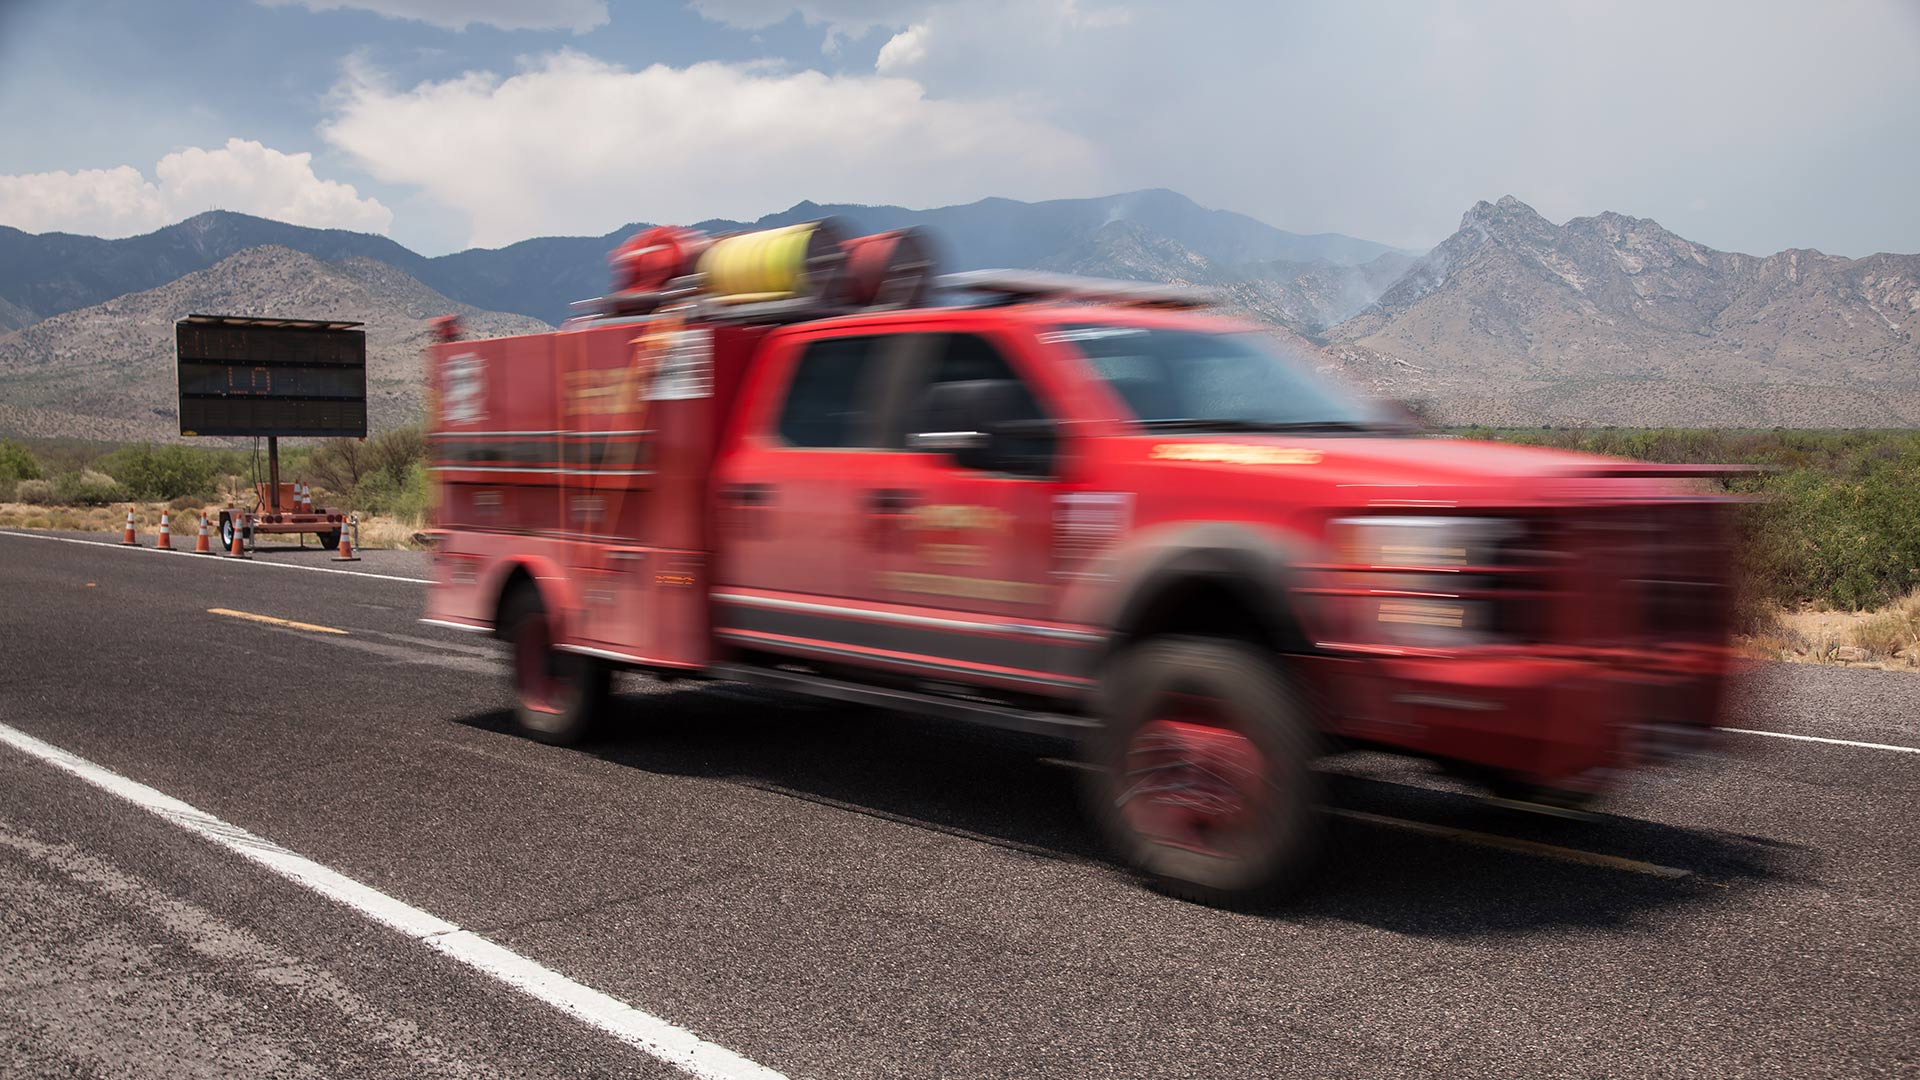 A fire truck returns after responding to the Frye Fire in the Pinaleño Mountains.